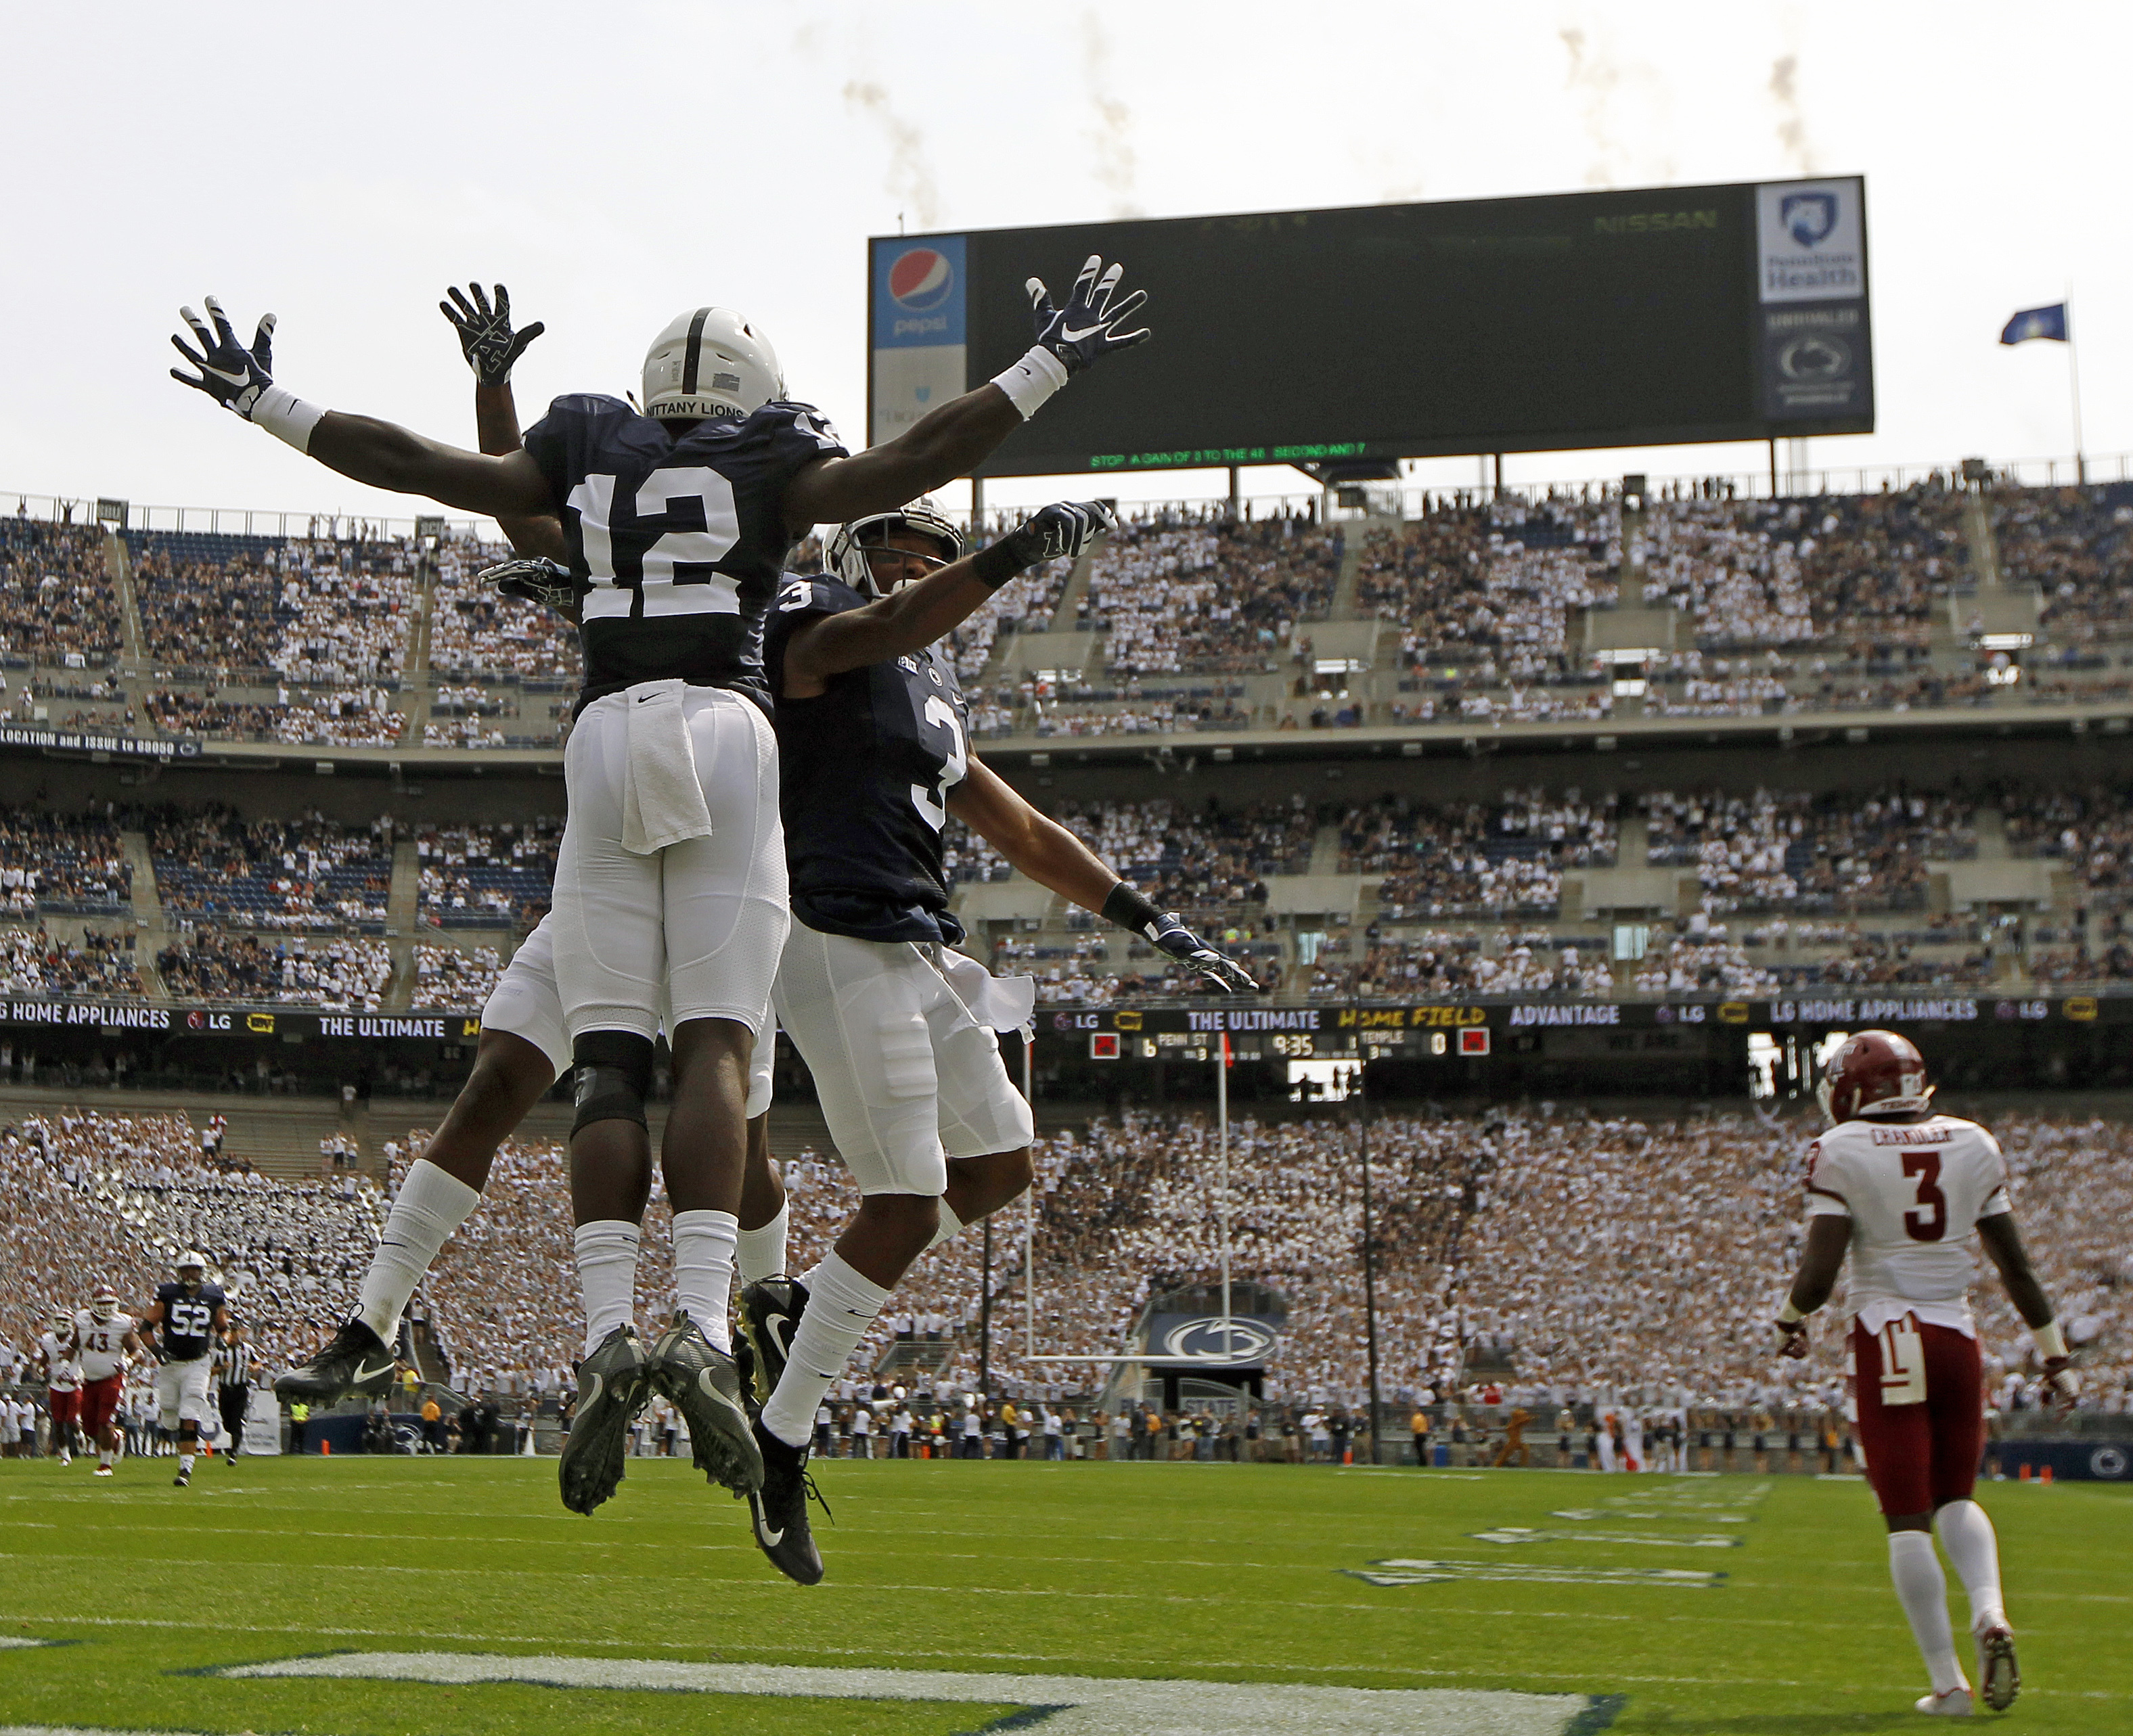 Penn State's Chris Godwin (12) celebrates with teammates after scoring a touchdown against Temple during the first half of an NCAA college football game in State College, Pa., Saturday, Sept. 17, 2016. (AP Photo/Chris Knight)